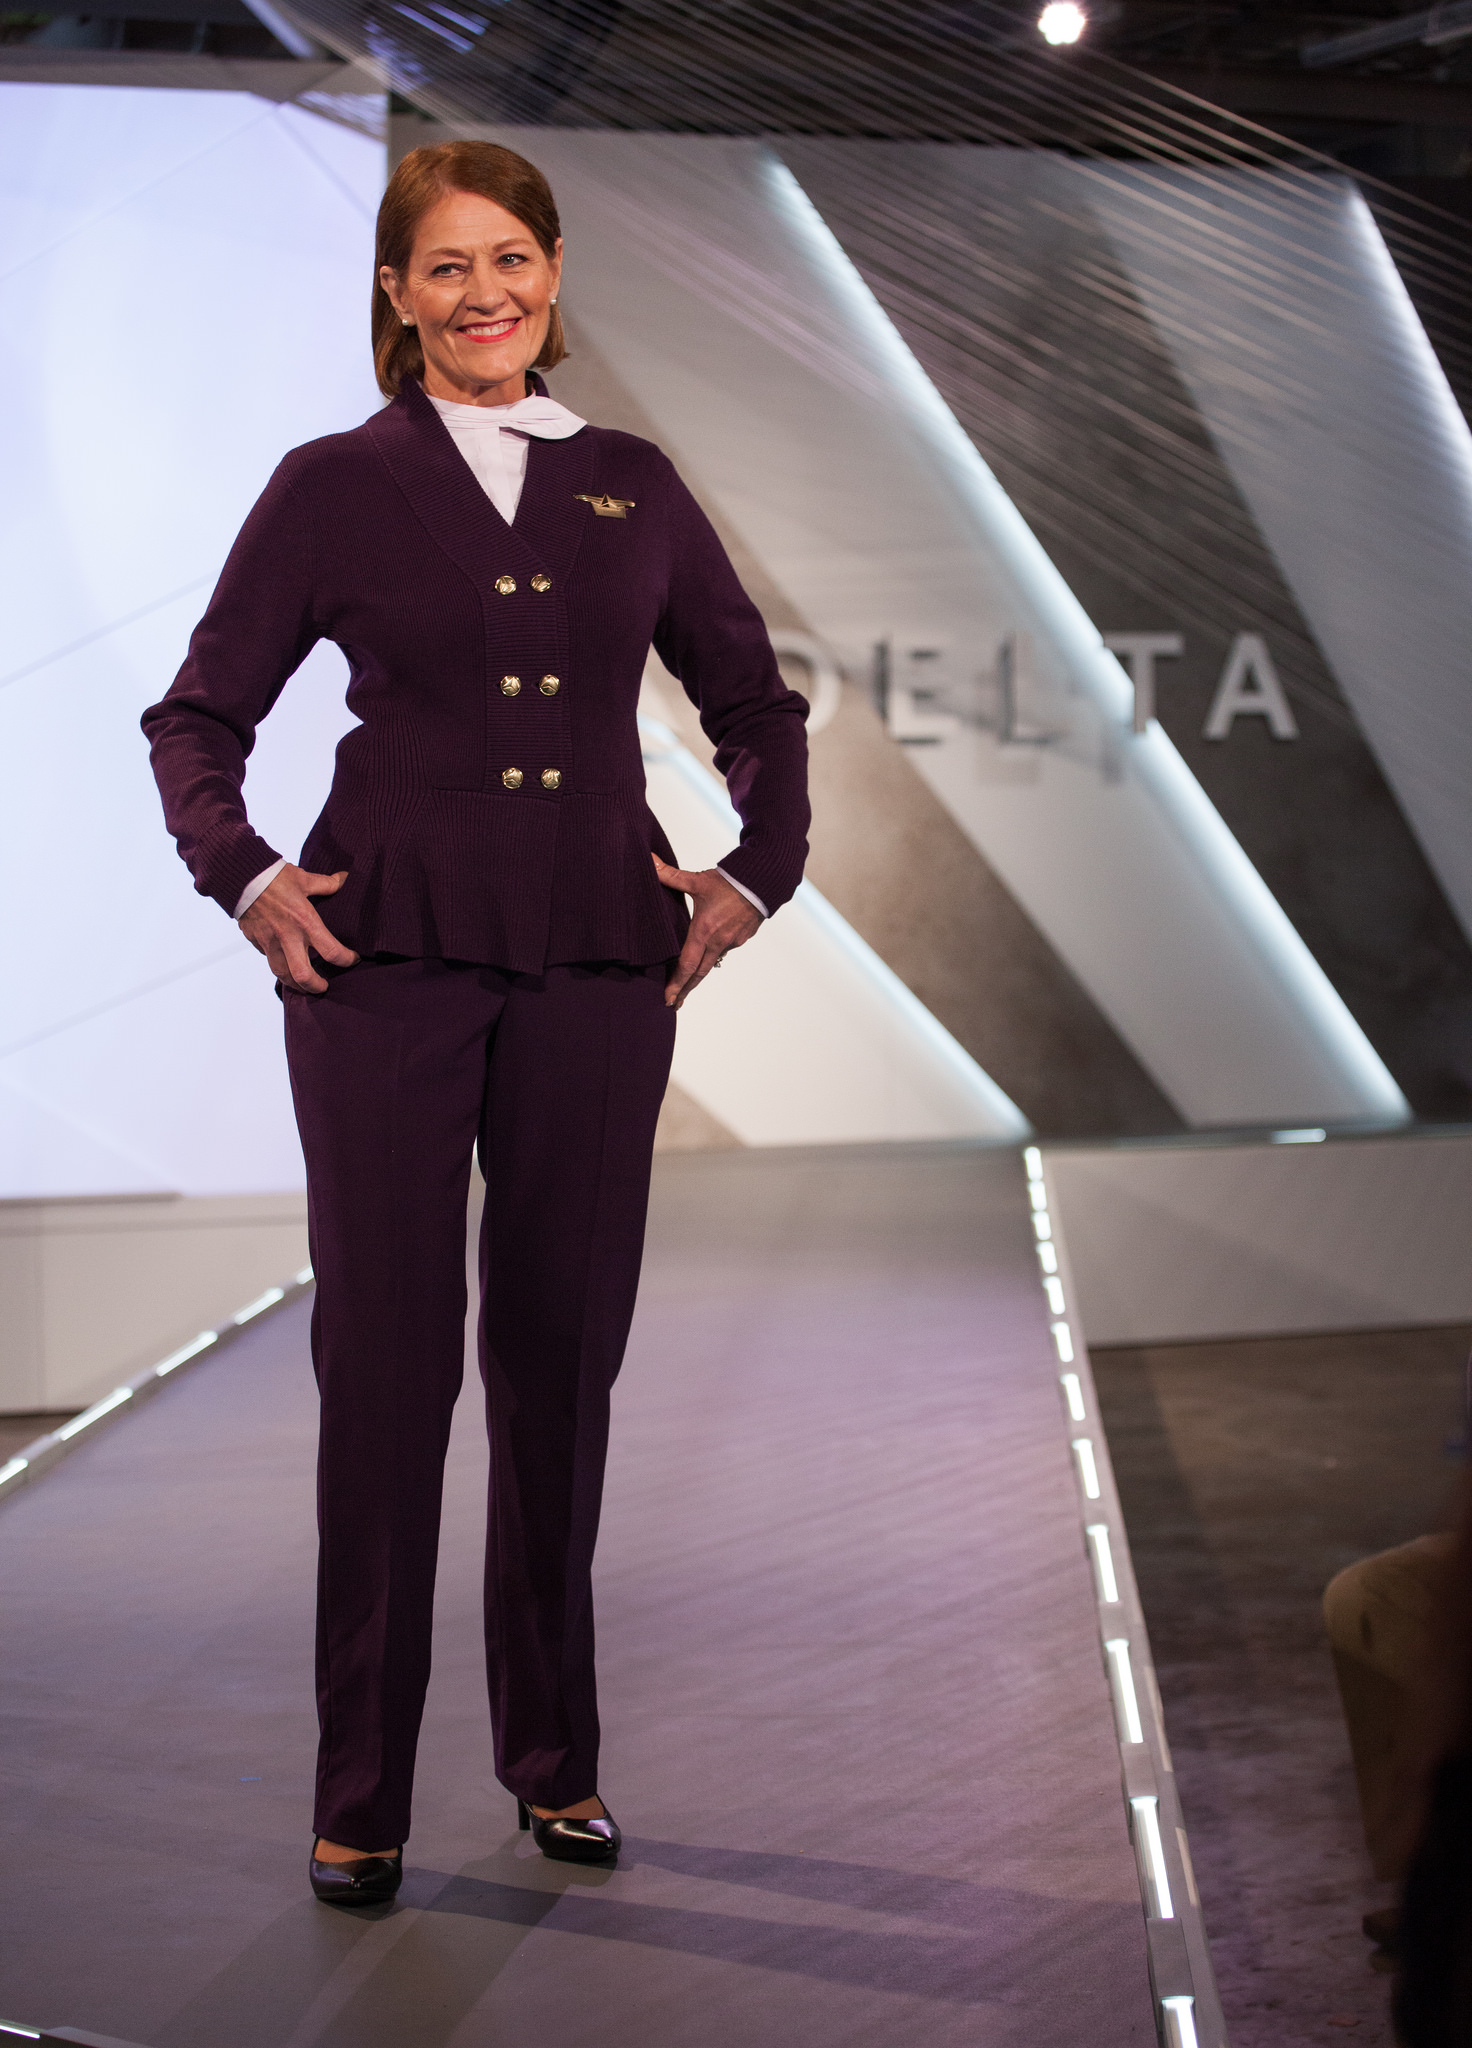 In-flight and airport customer service uniform